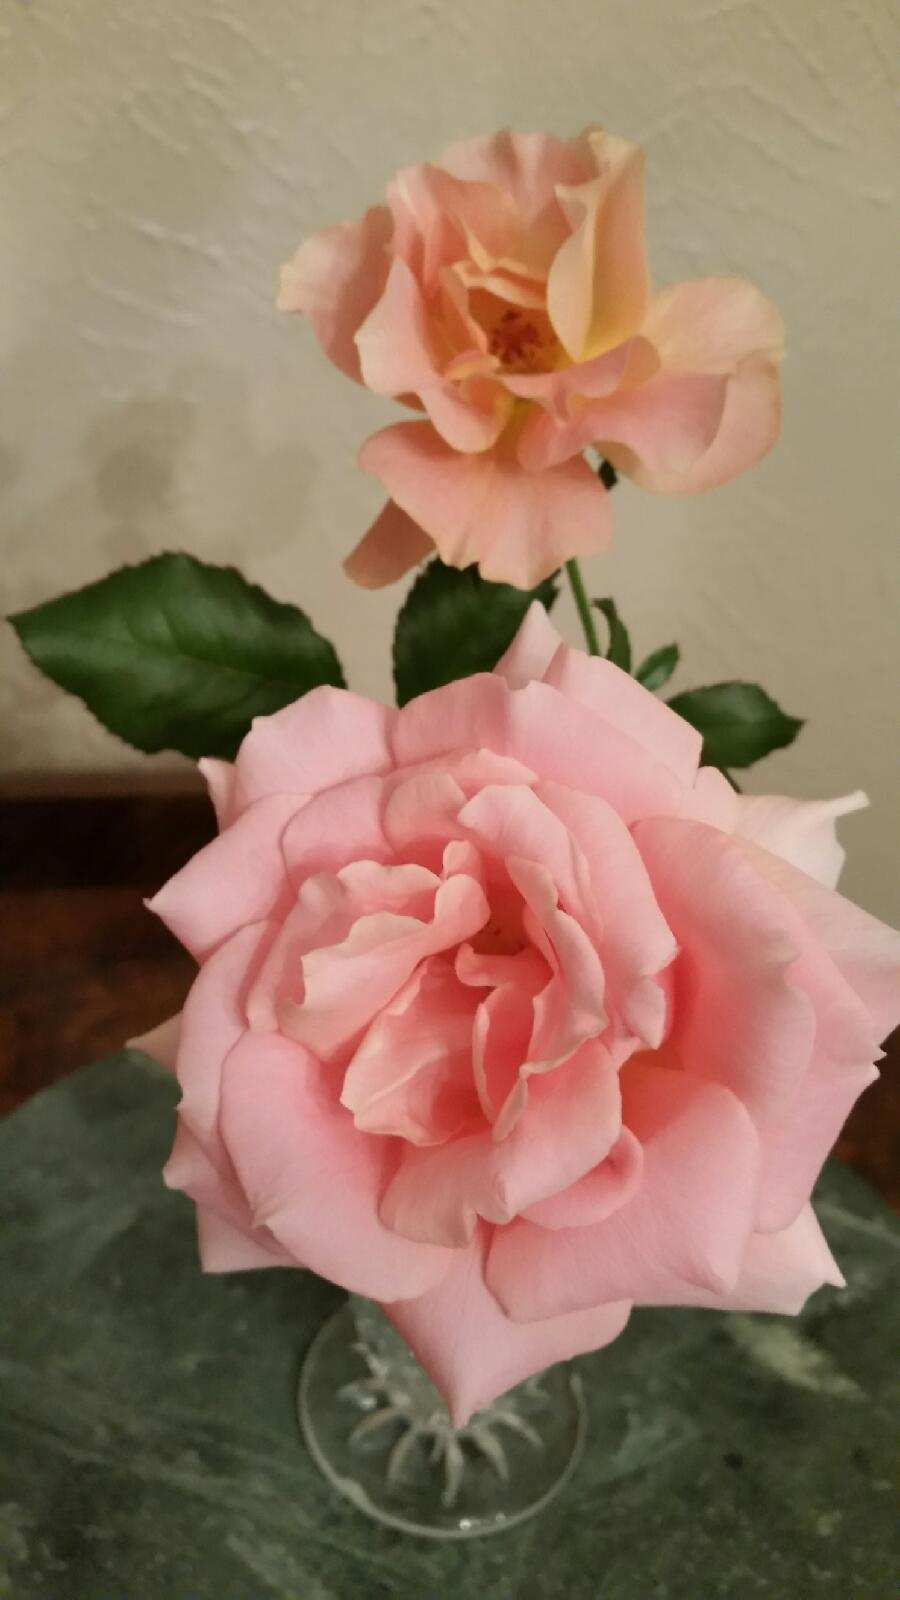 Ida's fragrant Rose